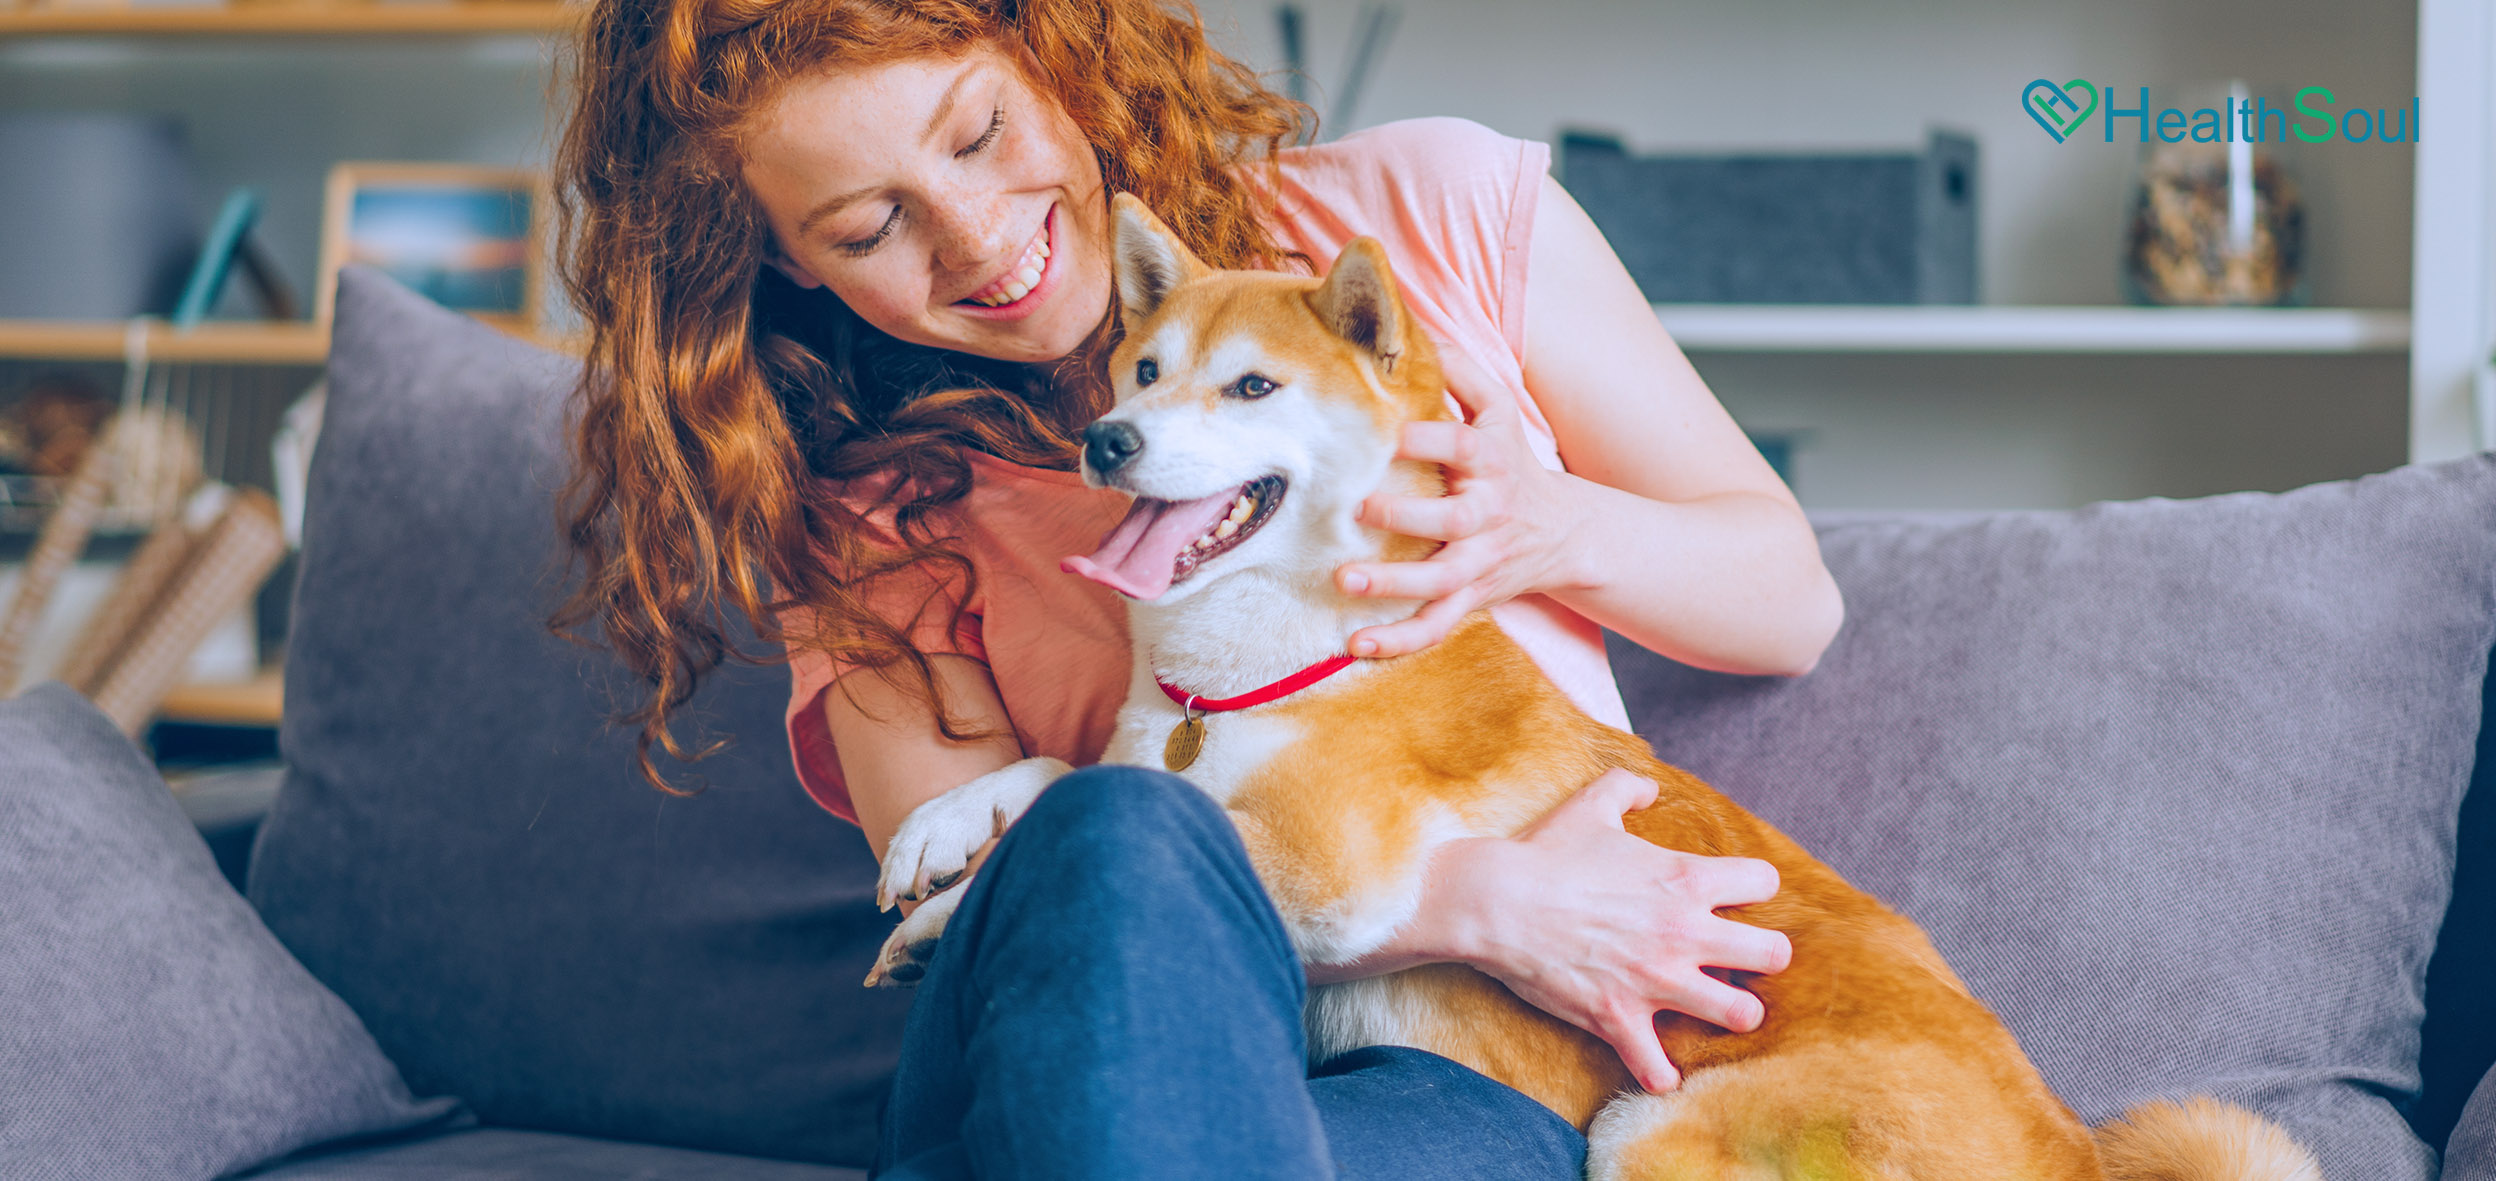 What are the surprise effects and health benefits of C60 oil for pets | HealthSoul